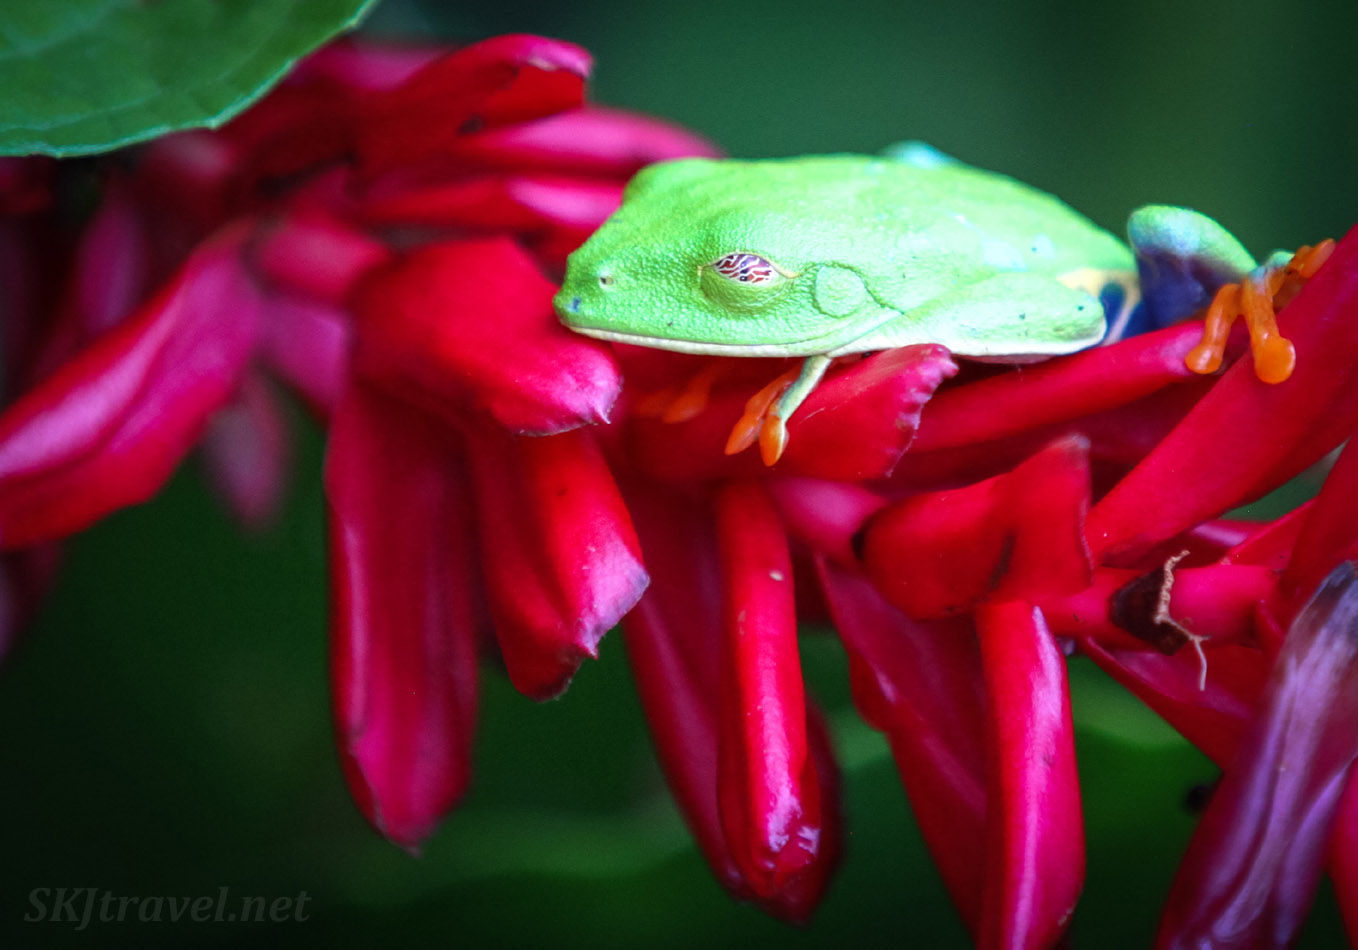 Red-eyed leaf frog with a nictitating membrane closed over its eyeball. Costa Rica national frog. Near La Fortuna.